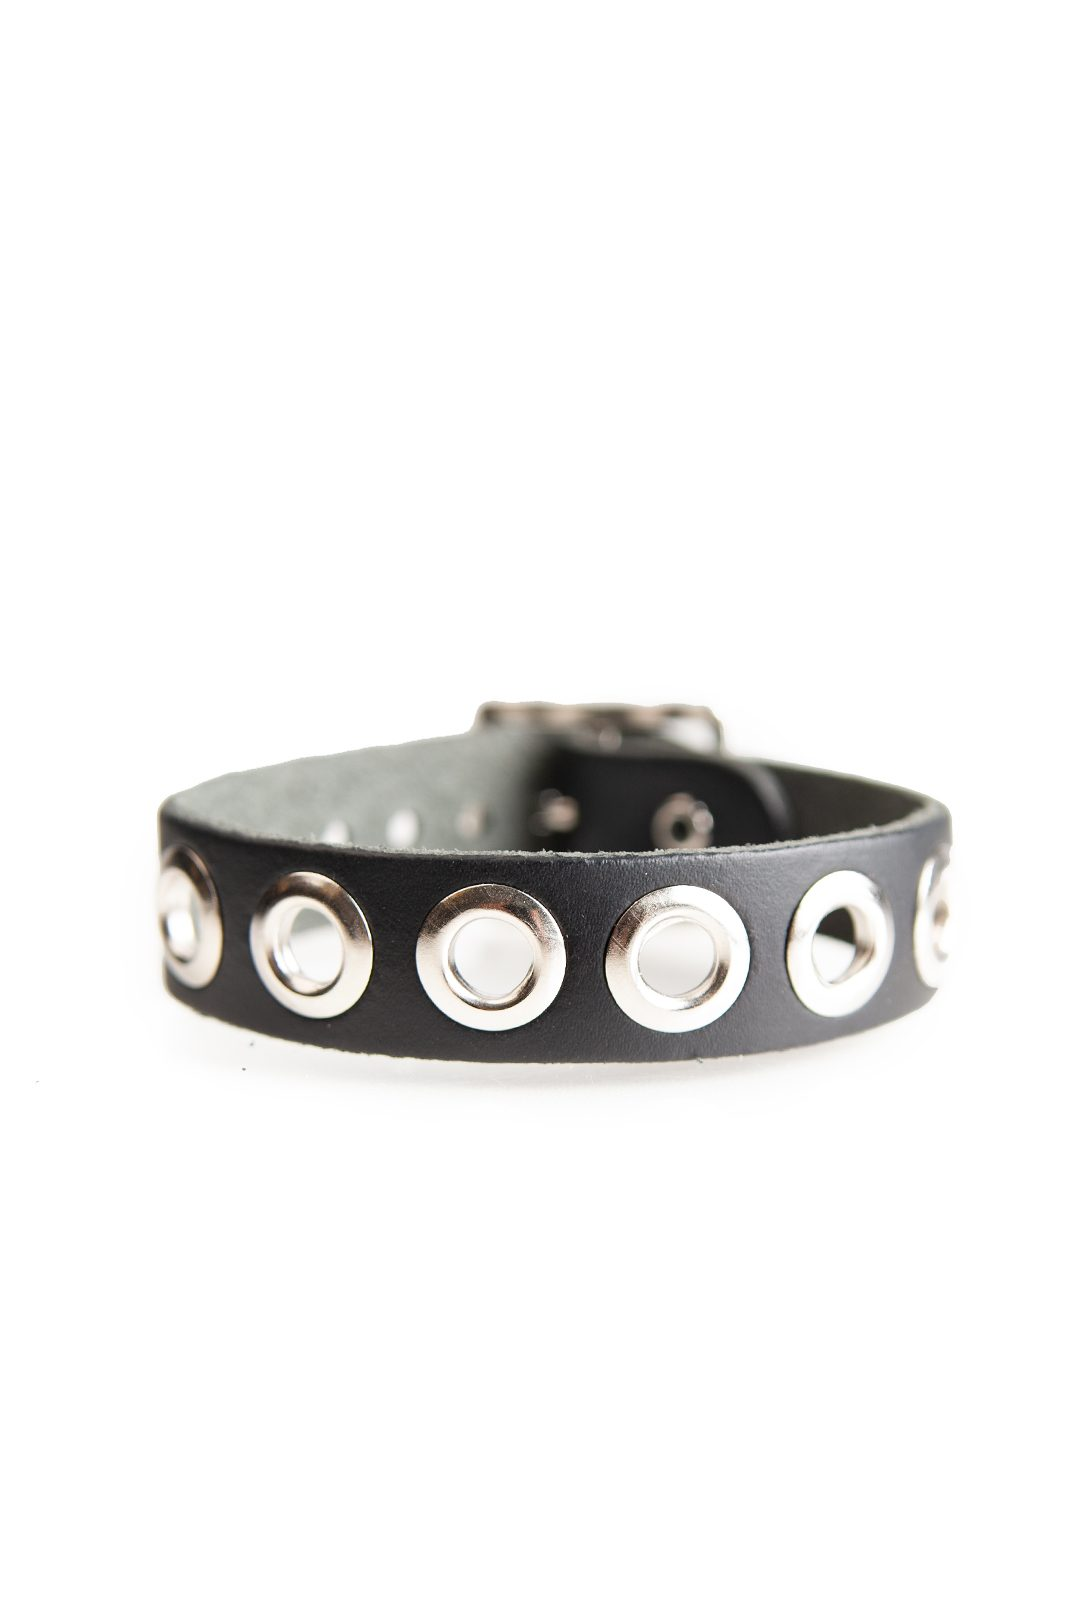 1 Row Eyelet Leather Wristband